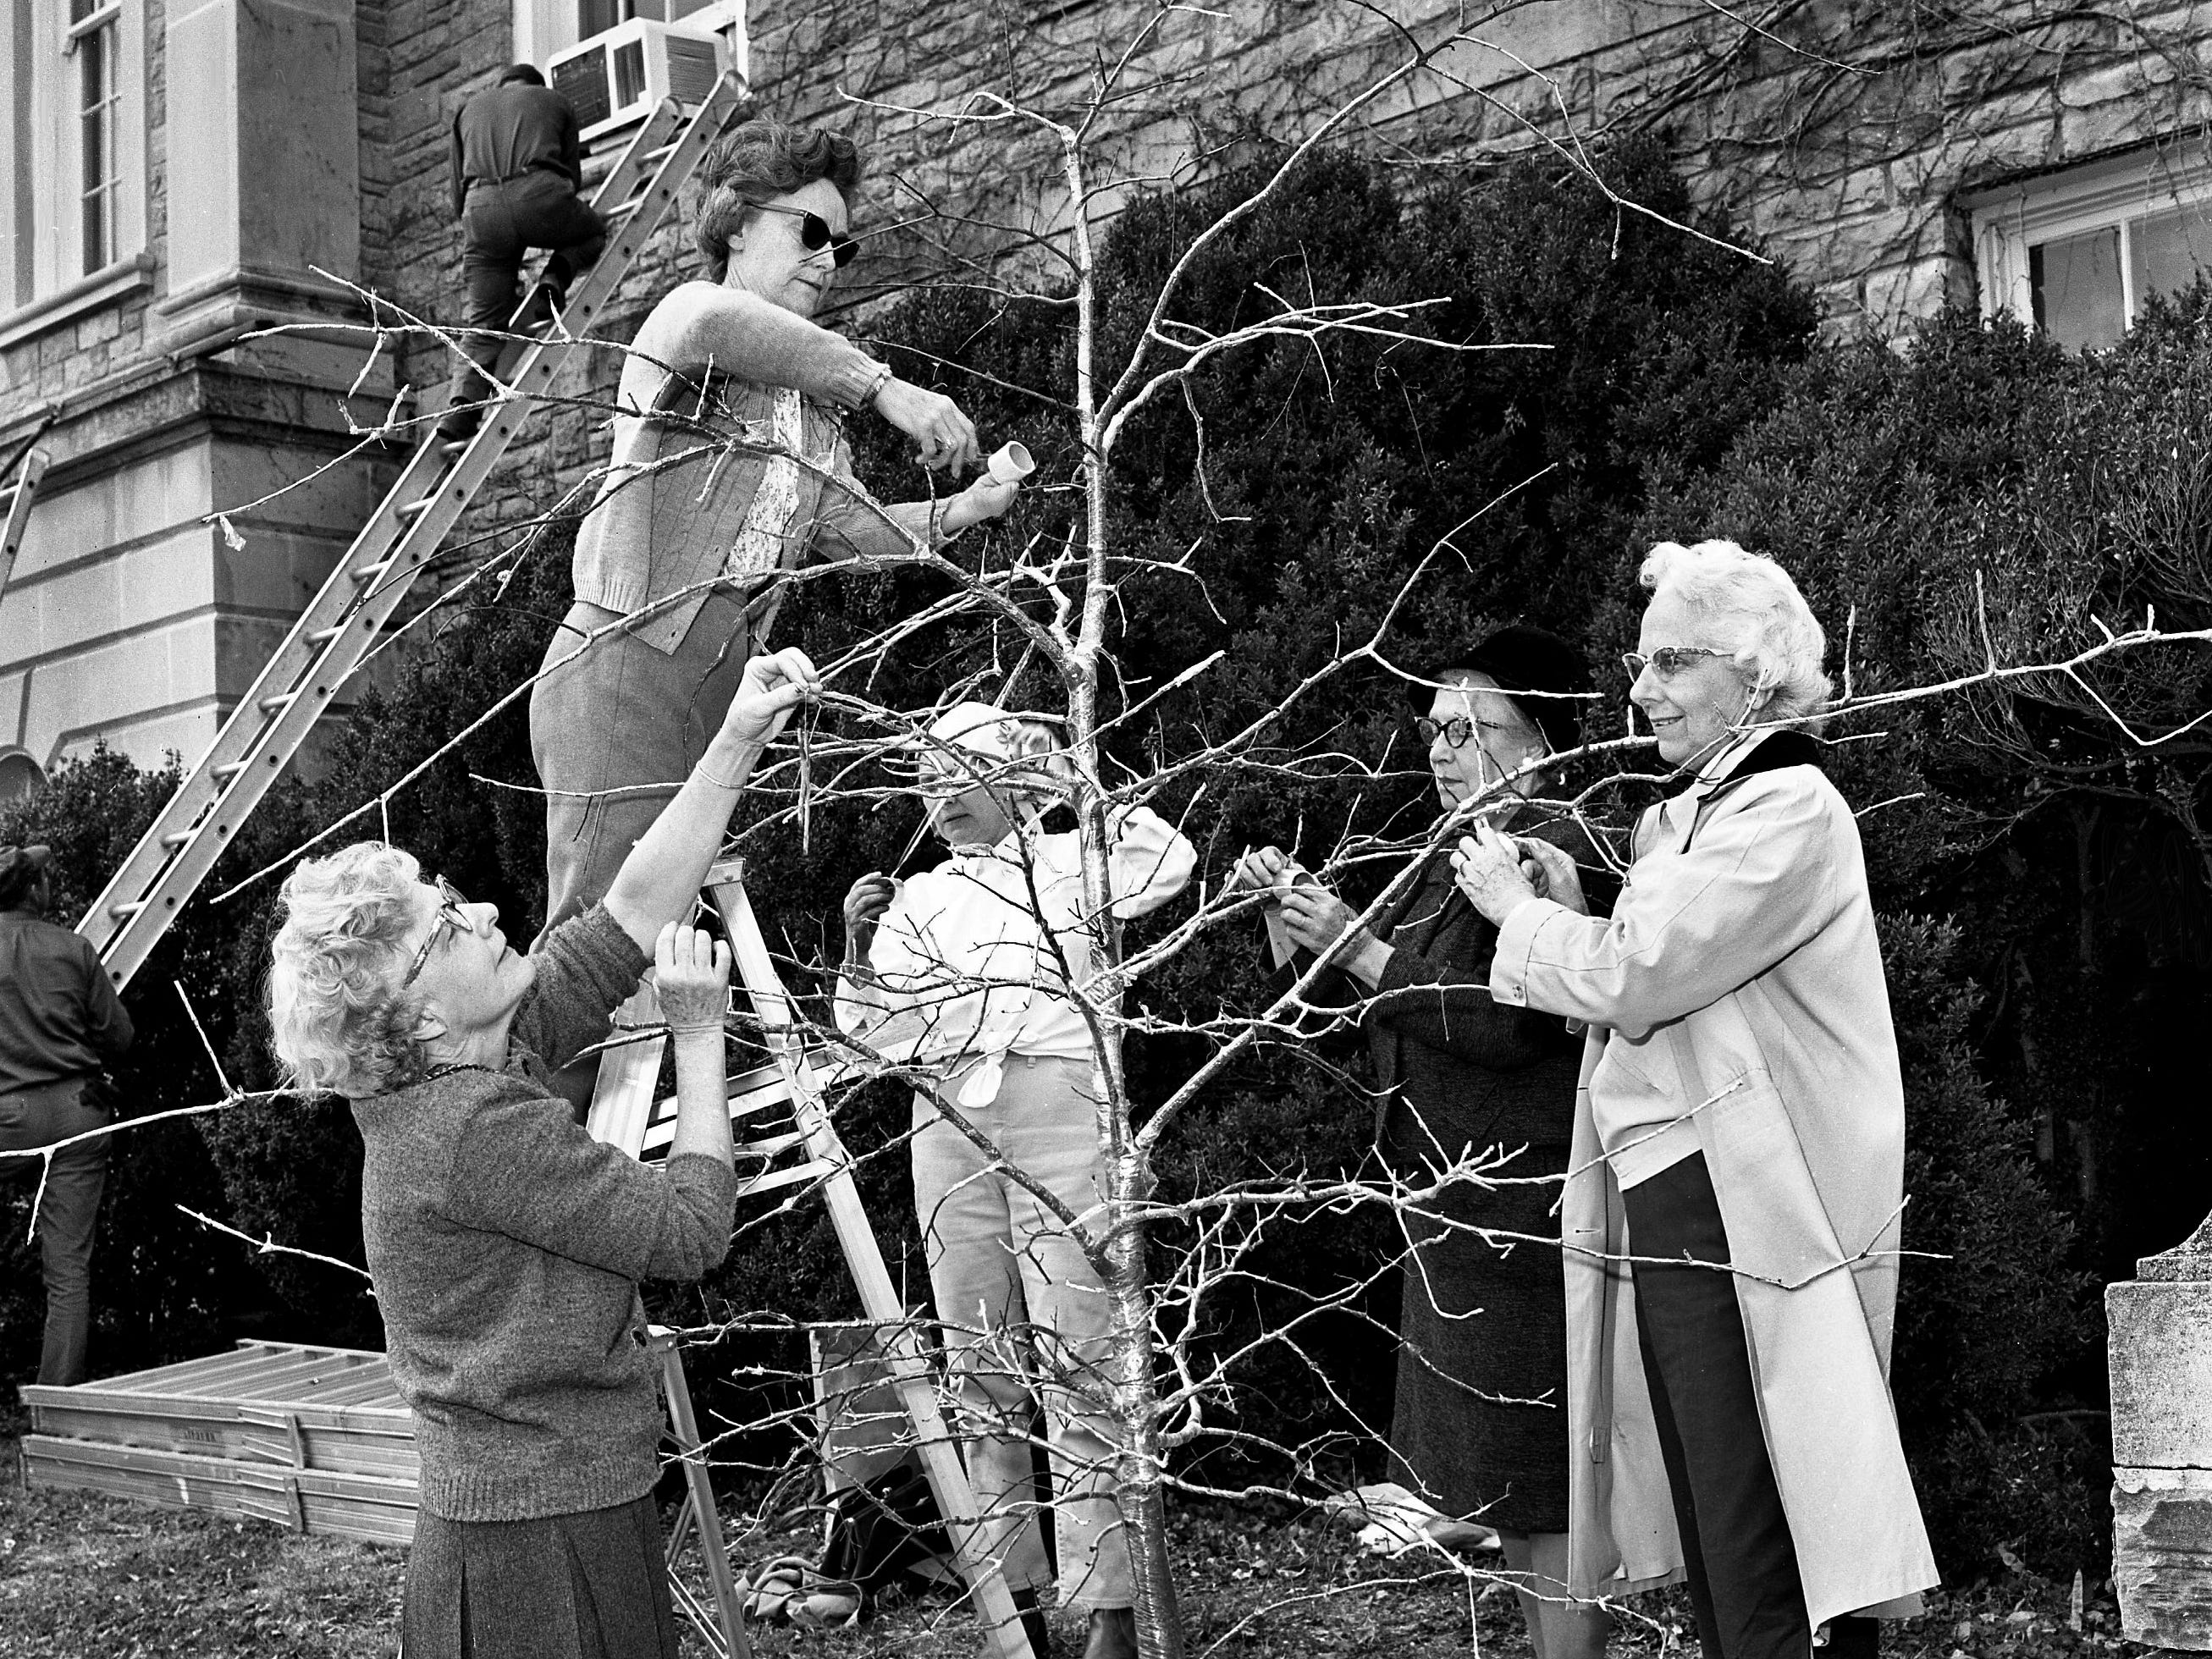 The Ice Tree, decorated by members of the Hampton Gardens Club, is the first tree to catch the attention of those attending the upcoming fourth annual Christmas at Cheekwood event. Wrapping the pin oak with plastic Dec. 3, 1968, are Mrs. John W. Mason, left, Mrs. C.C. McDowell, Mrs. George Harsh Jr., Mrs. David Glenn and Mrs. Earl Certain.